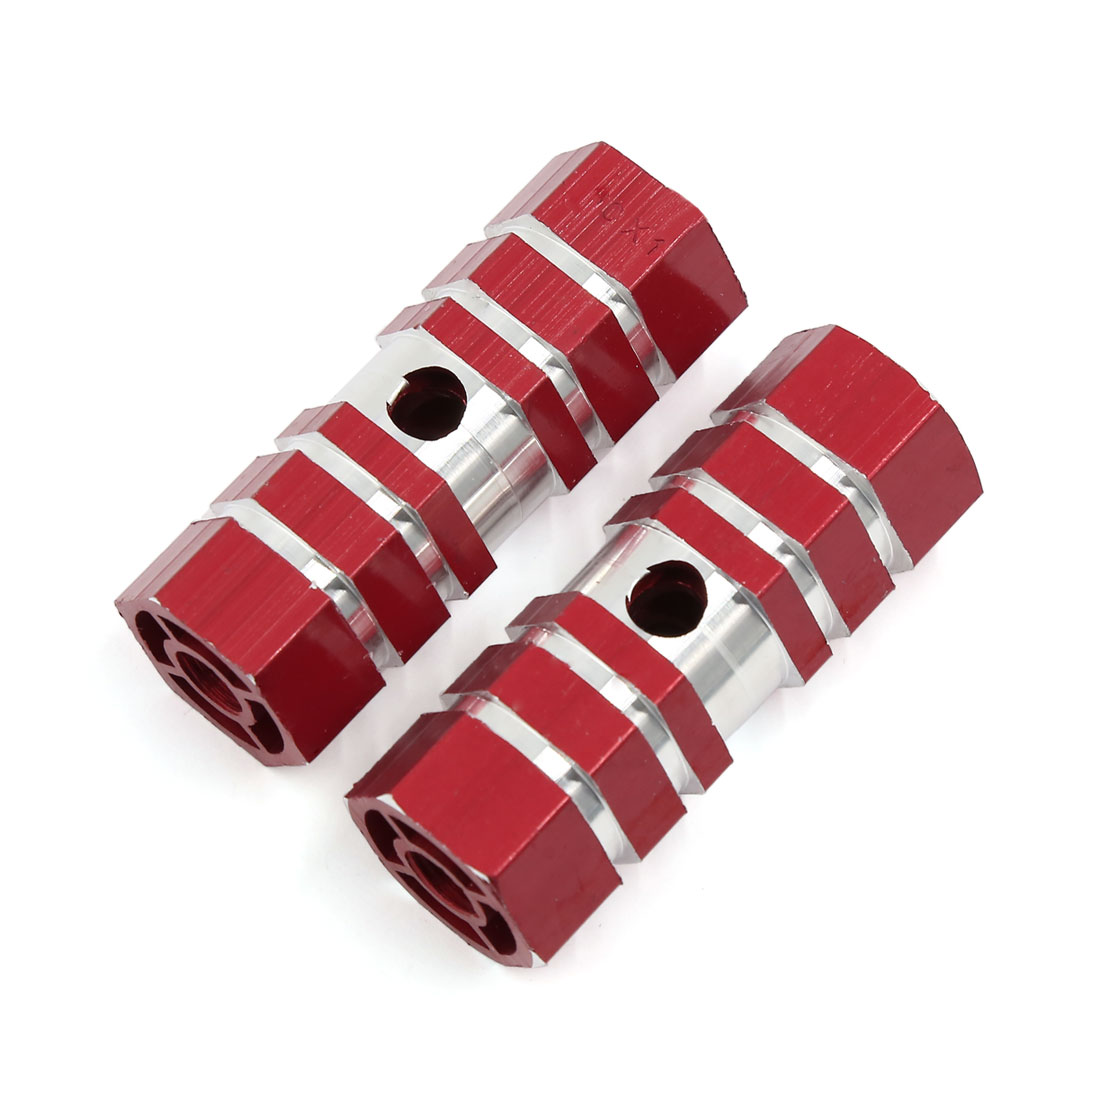 Cycling MTB Bicycle Hexagonal Cylinder Axle Foot Pegs Pair Red